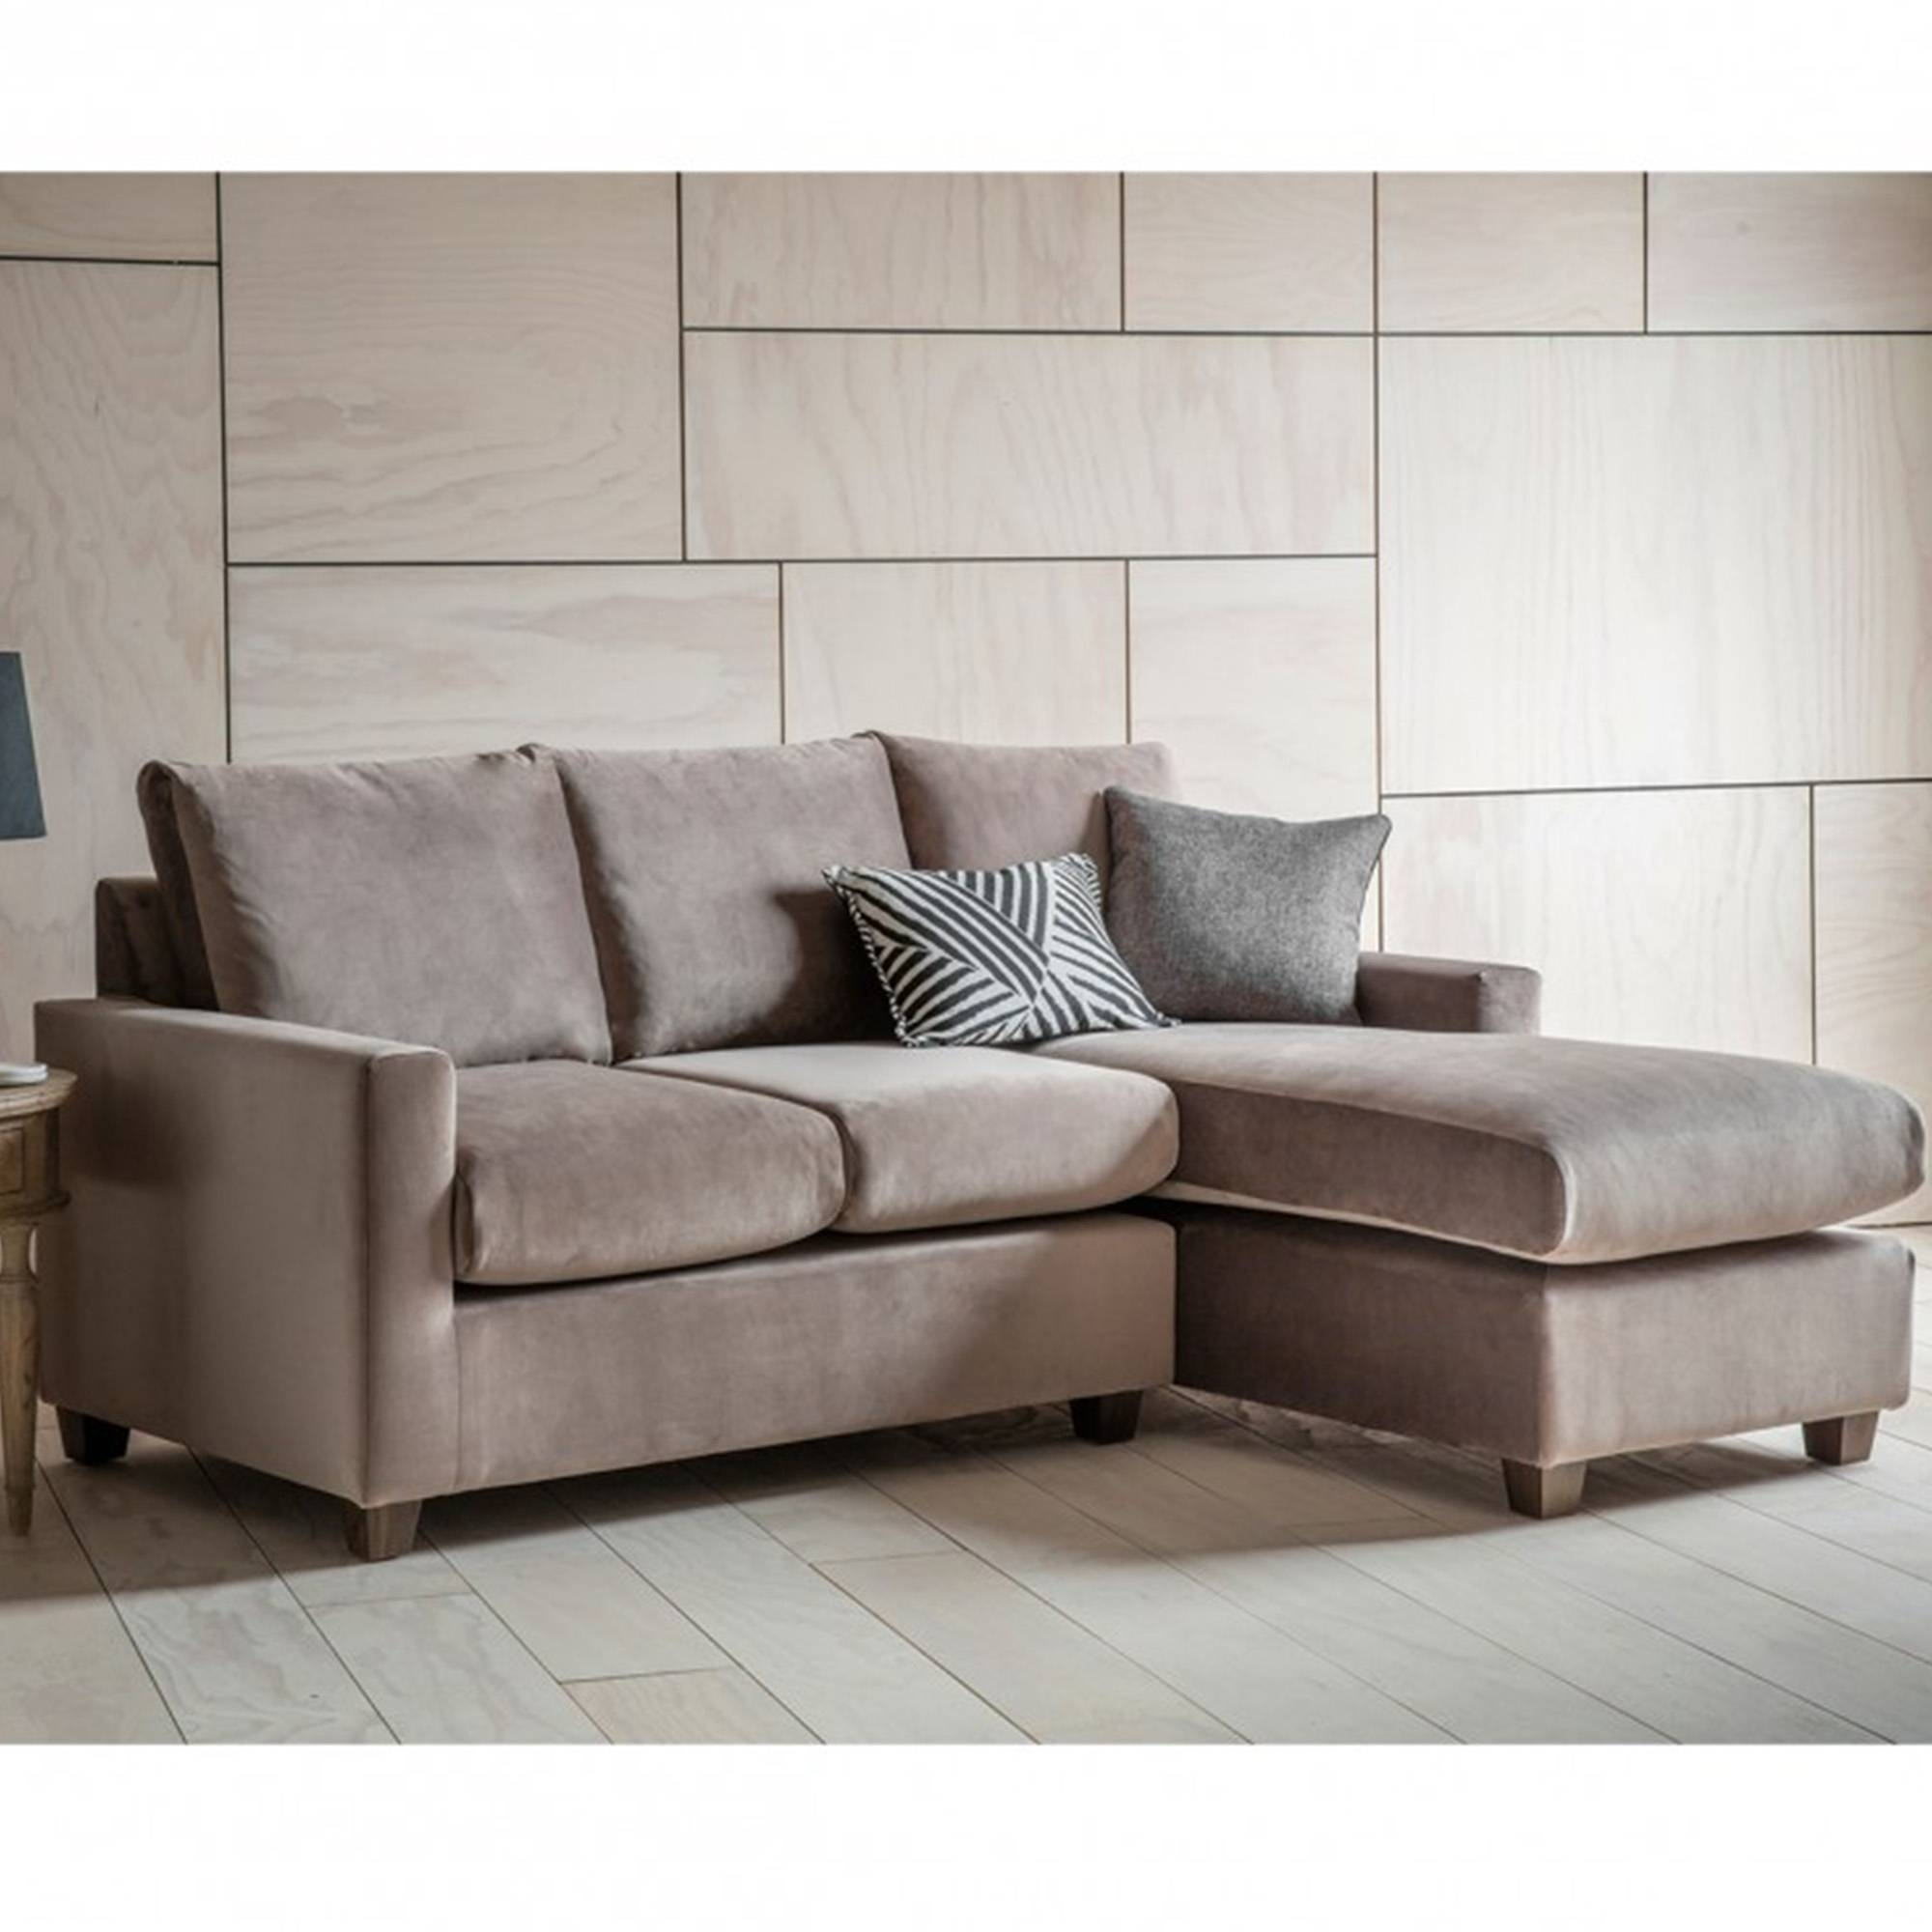 Brussels Taupe Stratford Lh Chaise Sofa | Seating Online From in Stratford Sofas (Image 3 of 30)